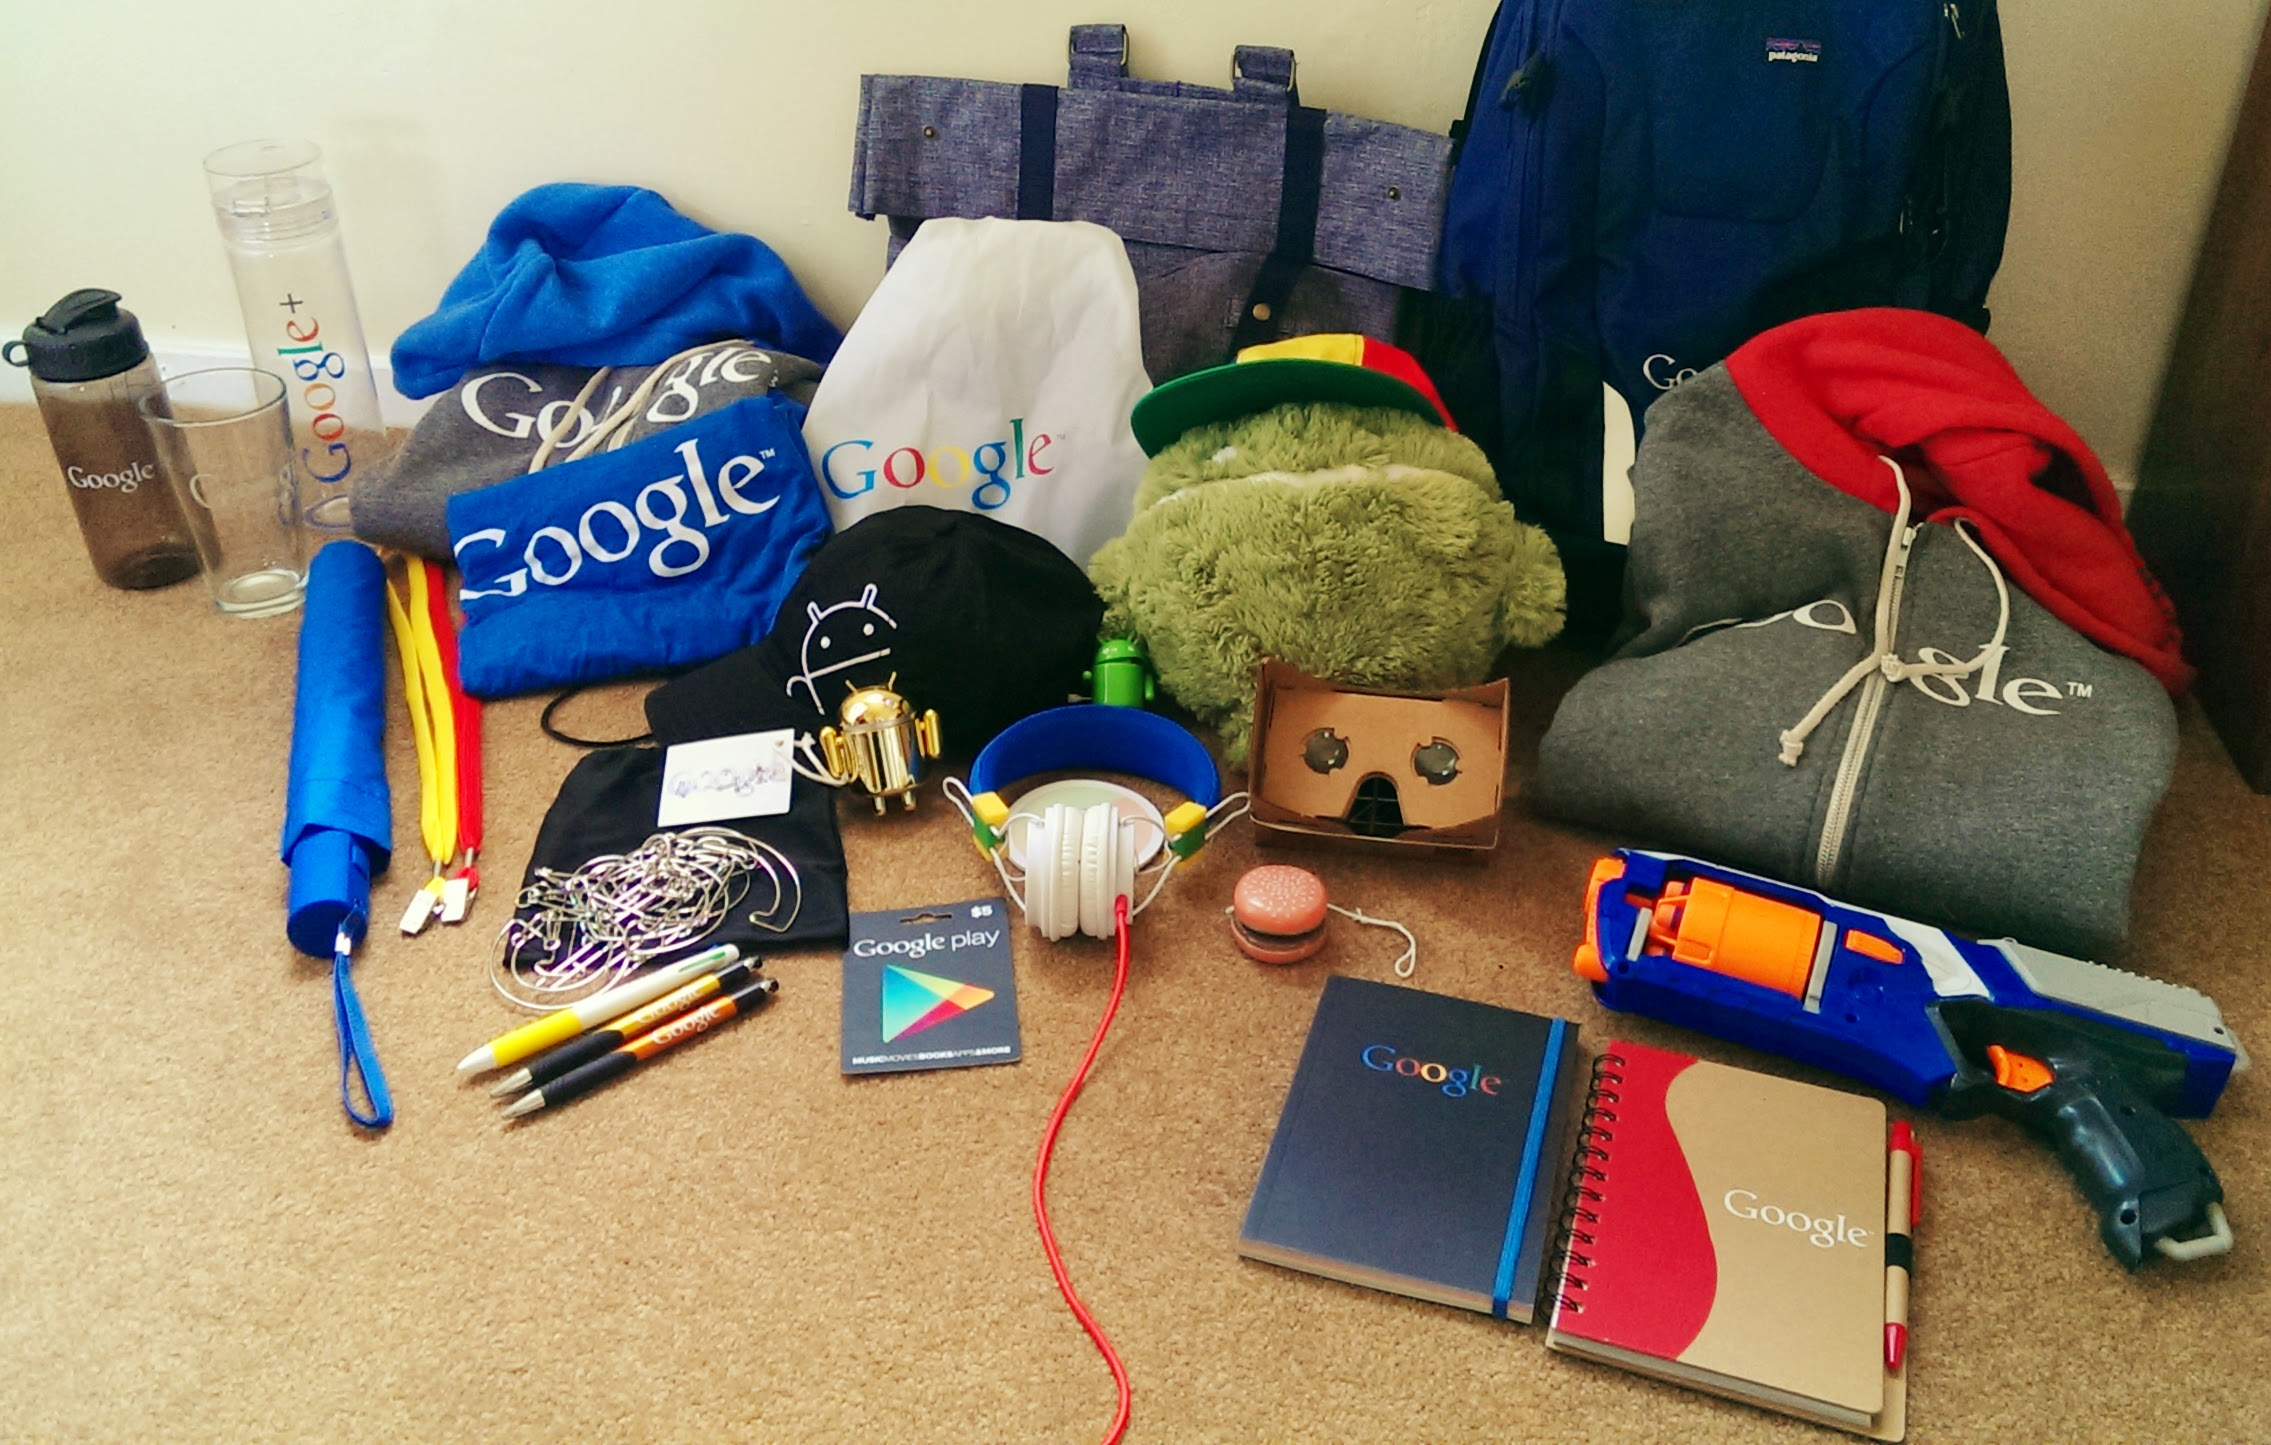 A Google intern posted a photo of all the free stuff they got. Jealous interns of other companies responded.